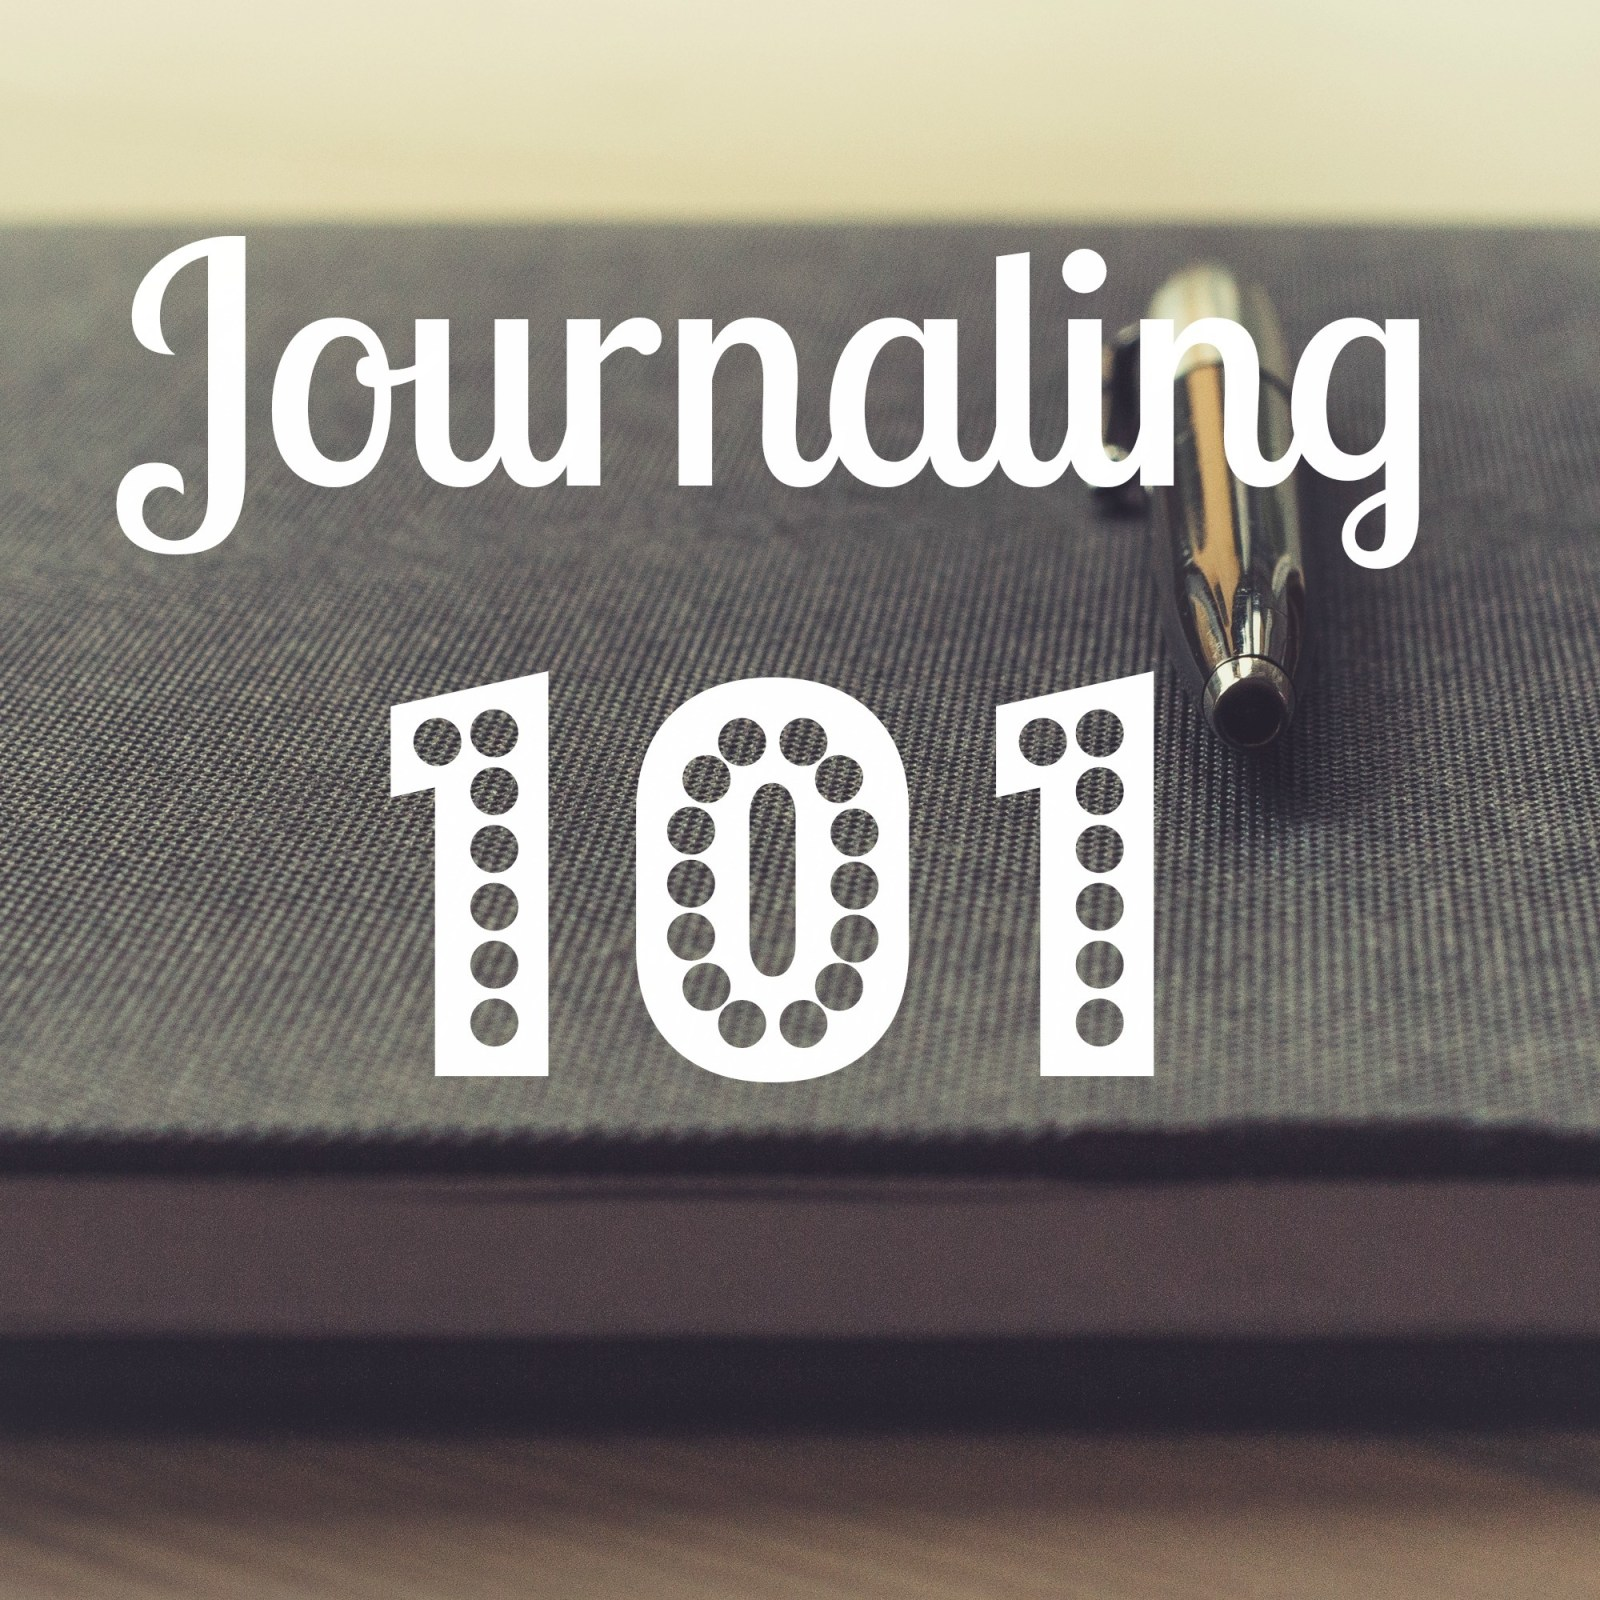 Journaling 101: How Writing Each Day Has Improved My Life, and How You Can Start a Journaling Habit of Your Own